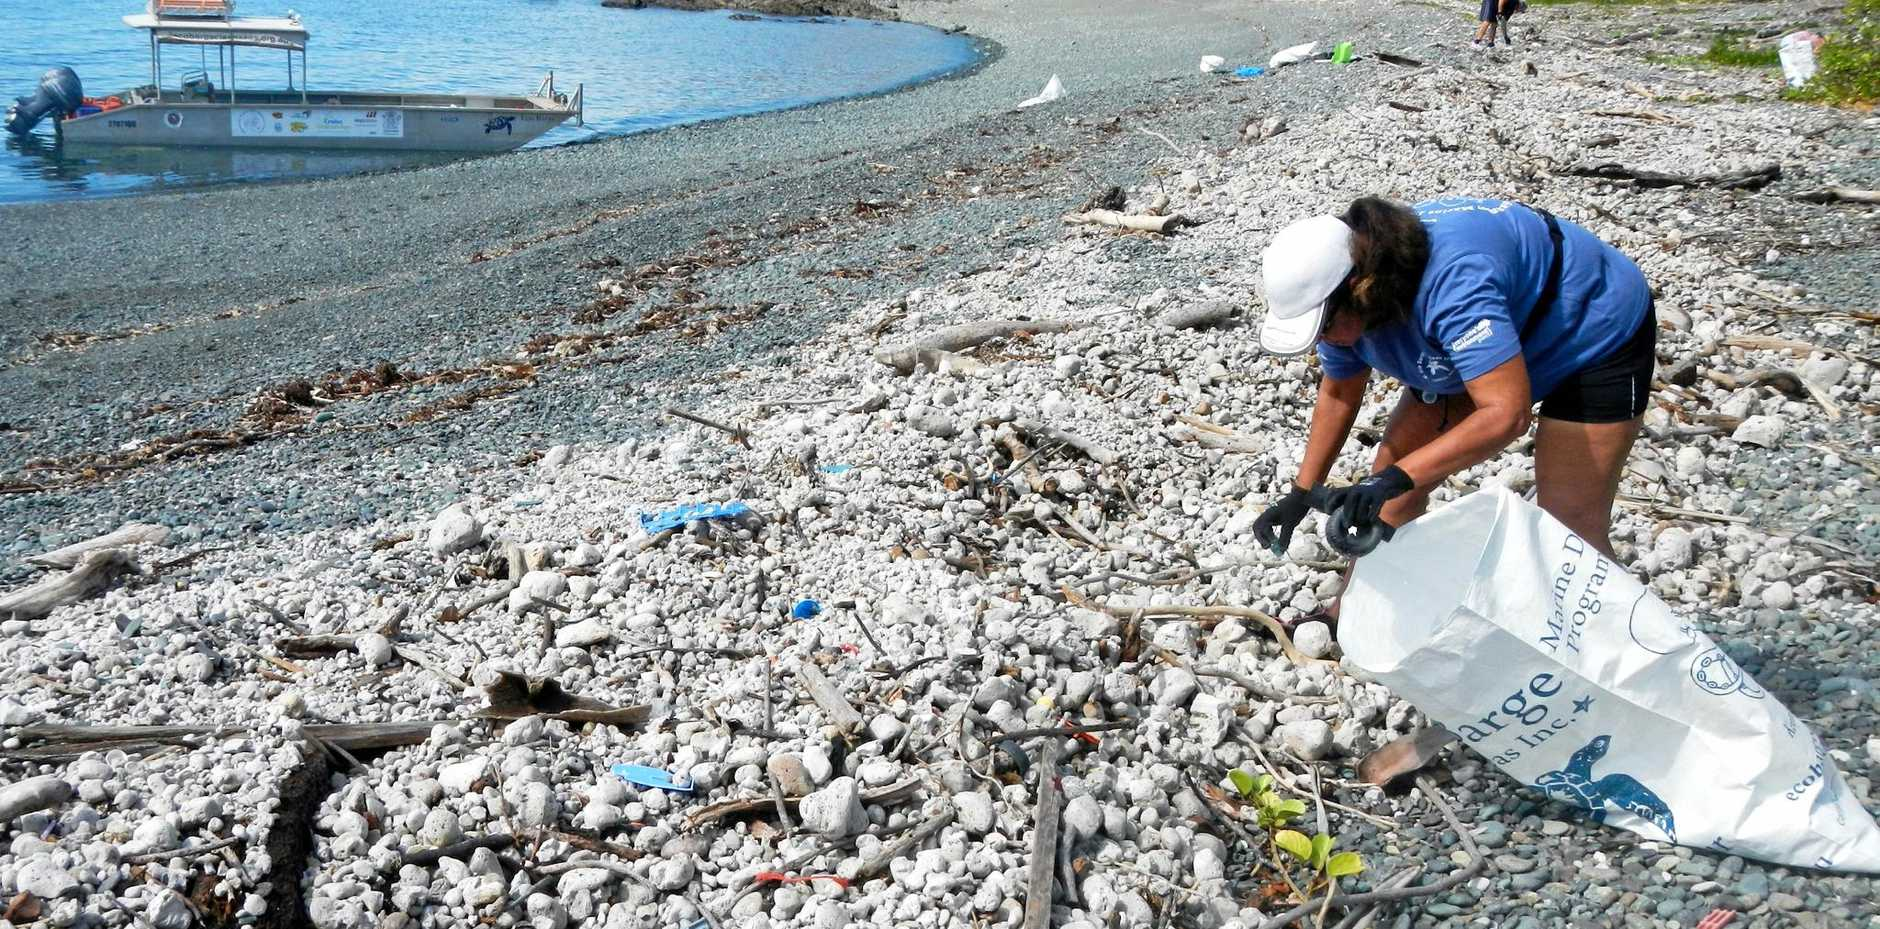 Gain a greater awareness of the challenge that marine debris throws up by attending Michelle's talk.